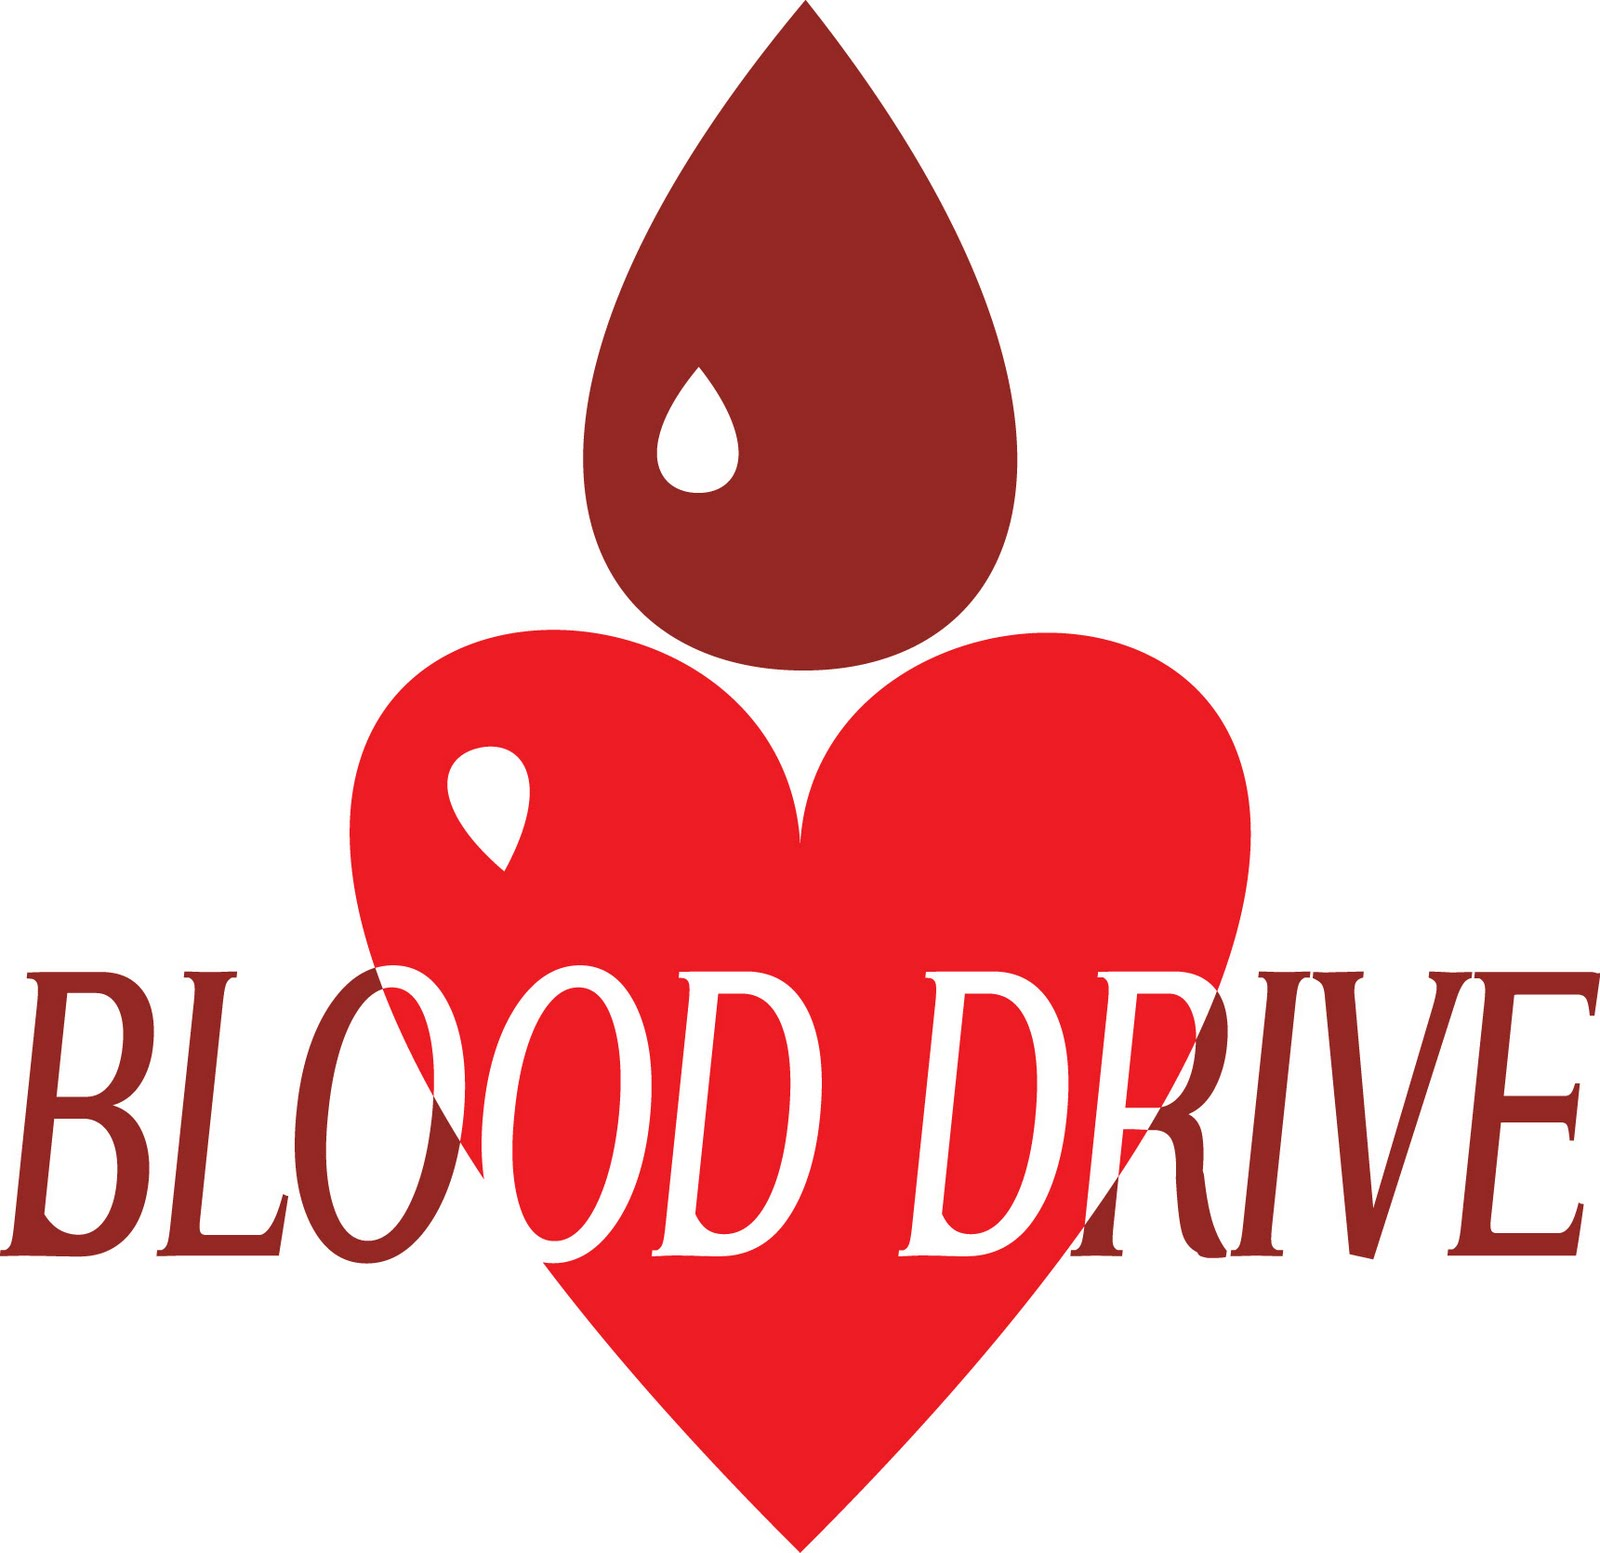 giving blood clipart - photo #11